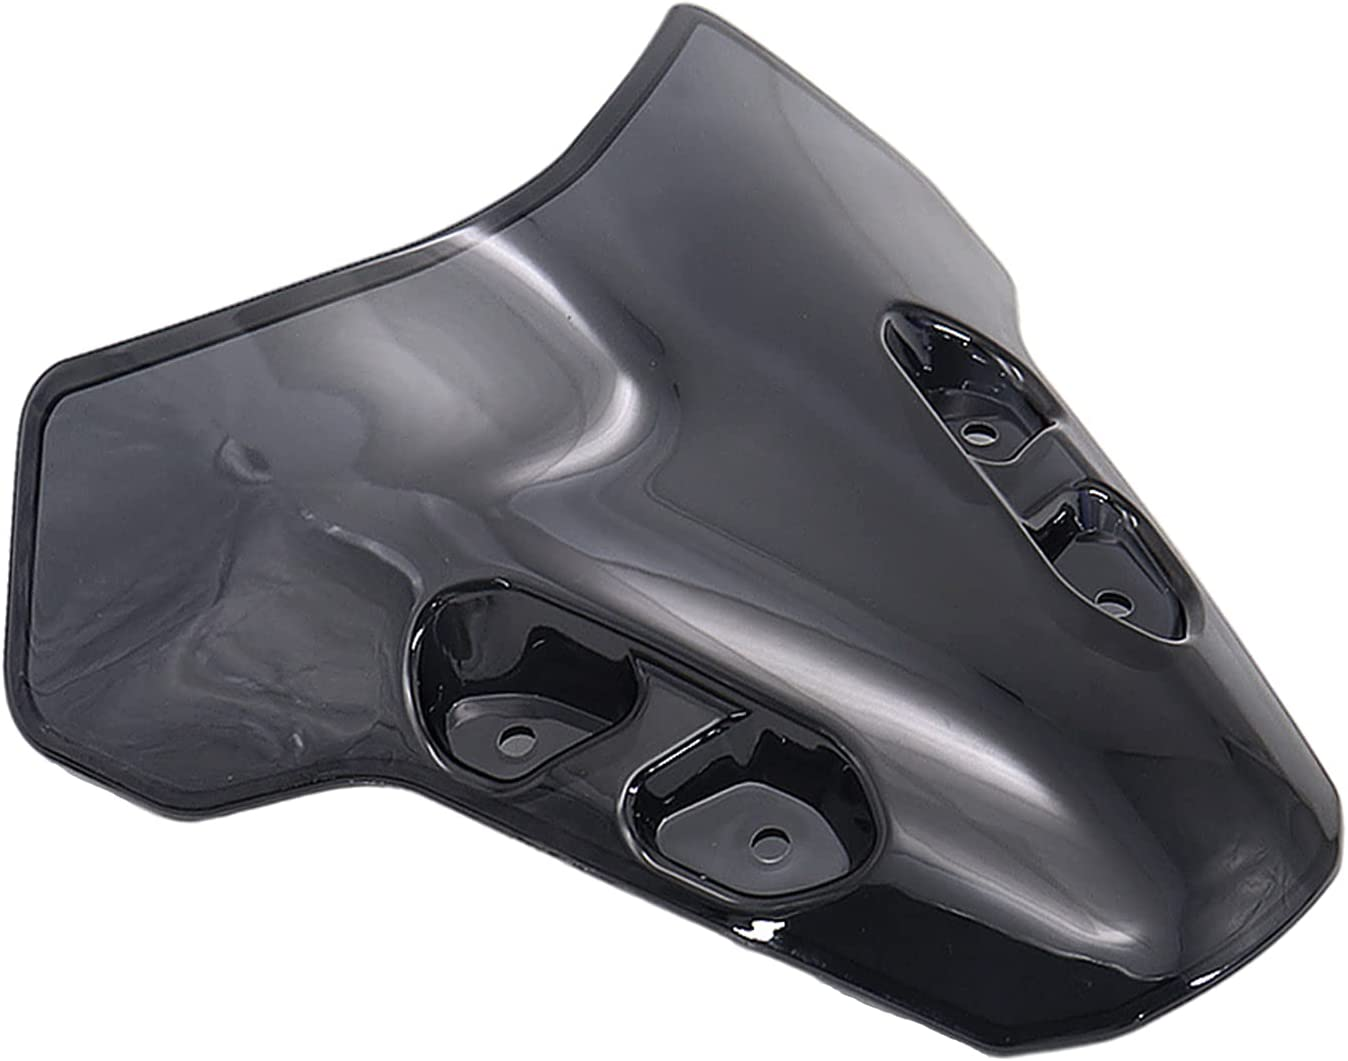 Homyl Motorcycle Credence Front Windshield Air Popular products Deflector Wind Flow Winds